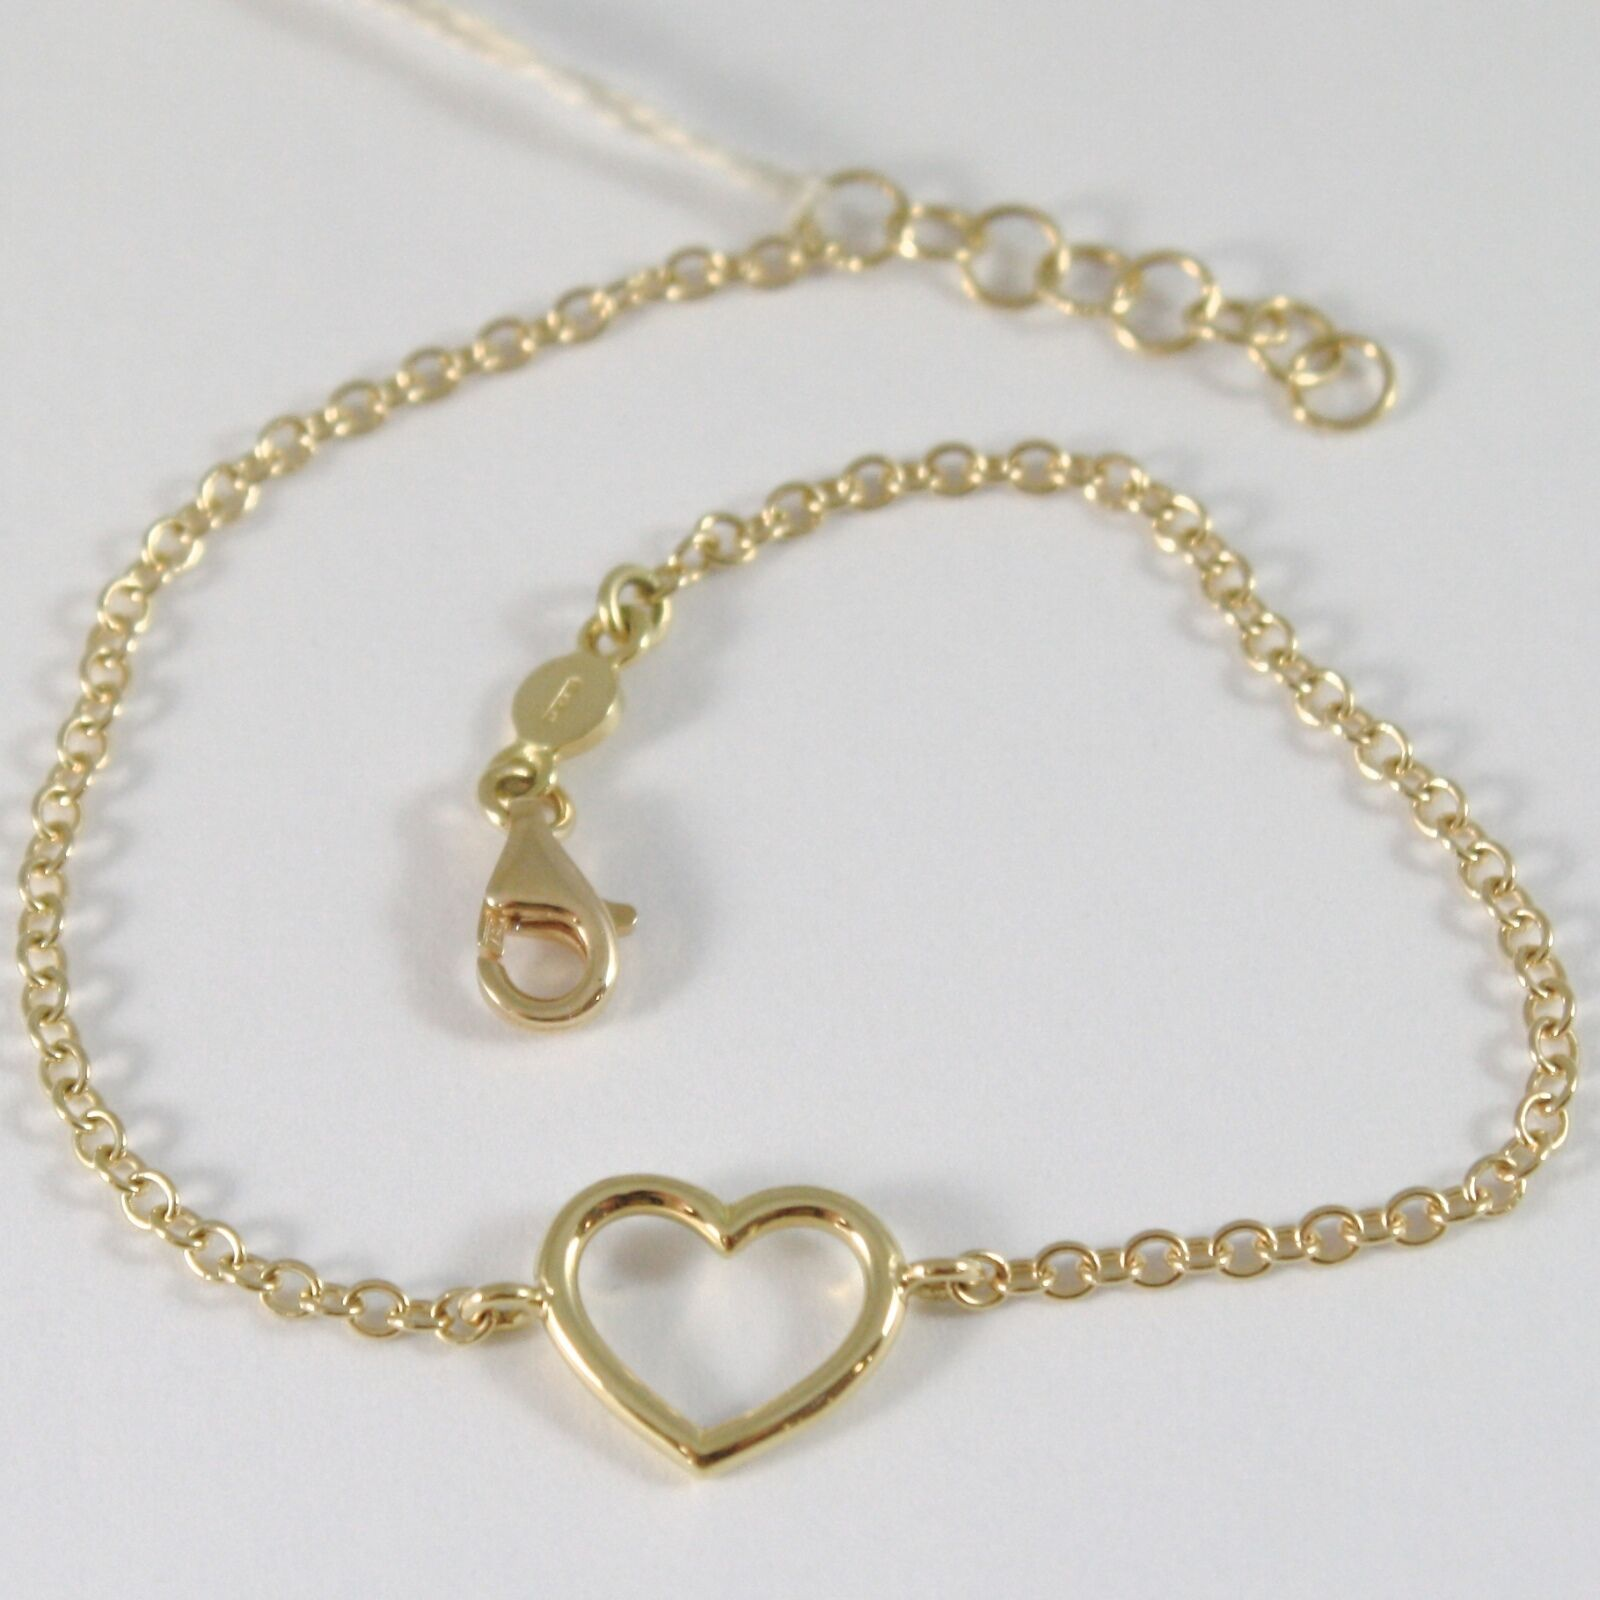 Yellow Gold Bracelet 750 18k with Heart Tube, ROLO, 18 cm length